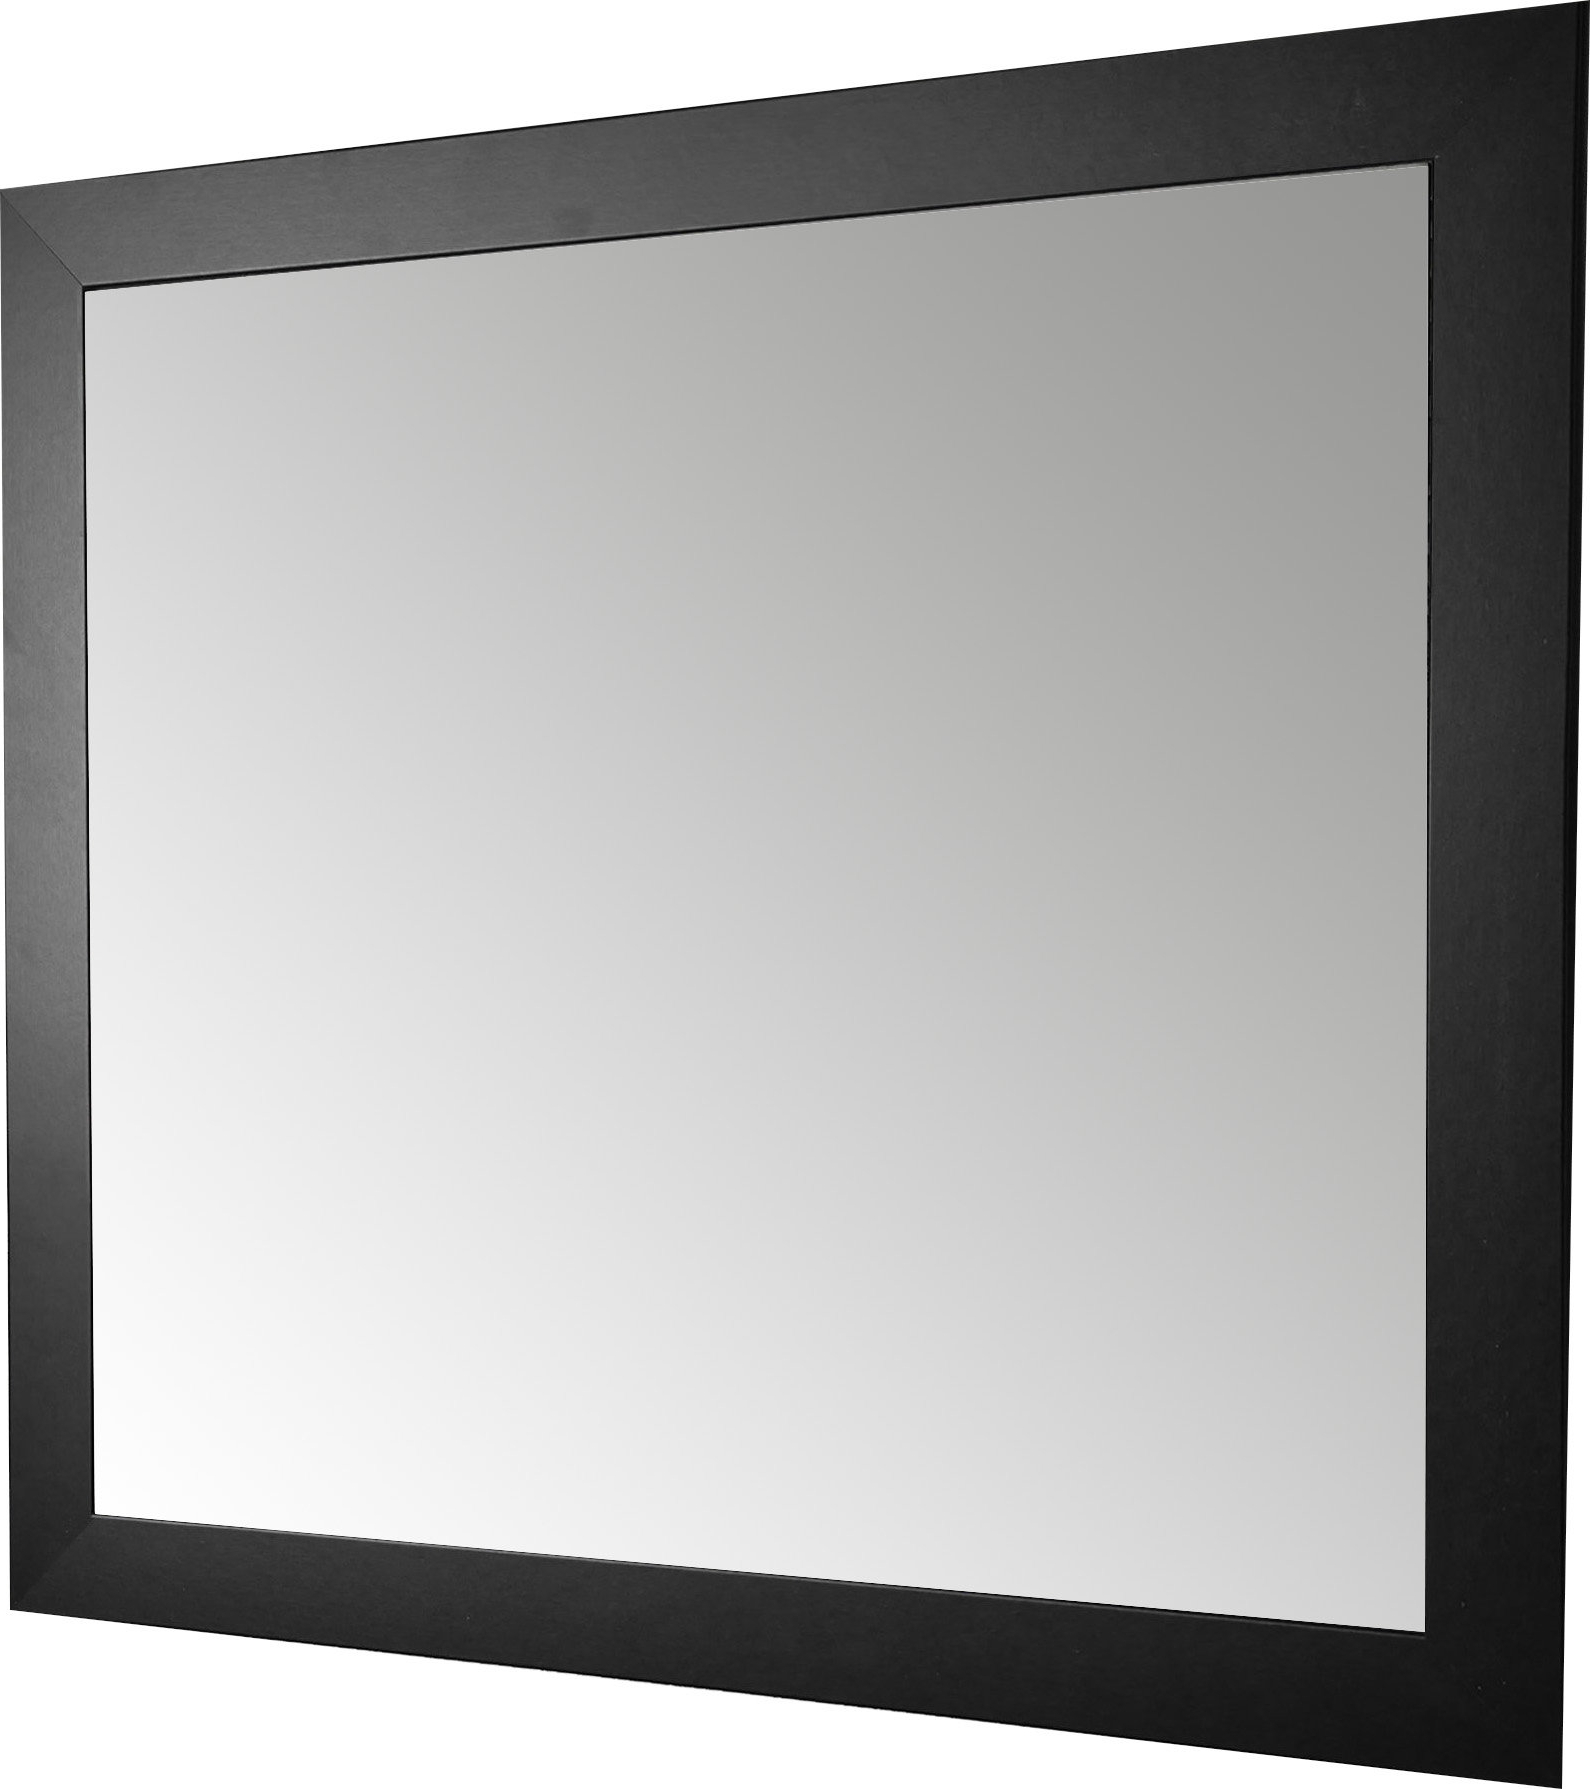 American Made Accent Wall Mirror Inside Widely Used American Made Accent Wall Mirrors (View 4 of 20)